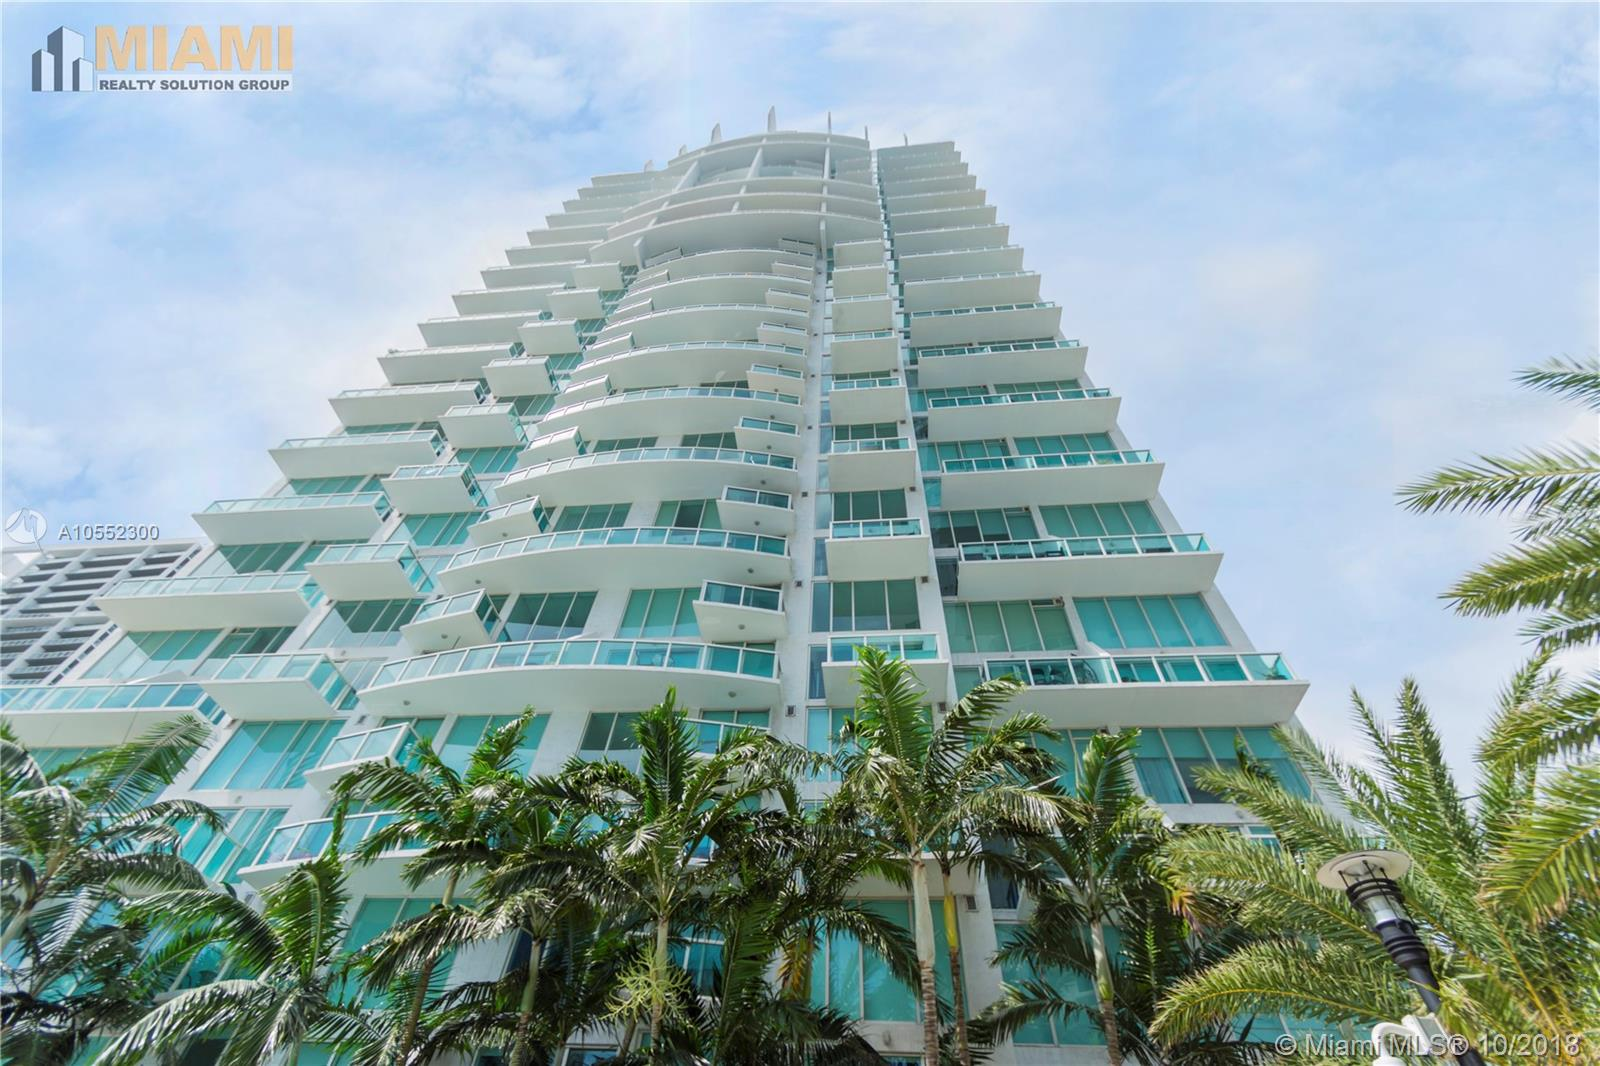 Brickell on the River South image #30